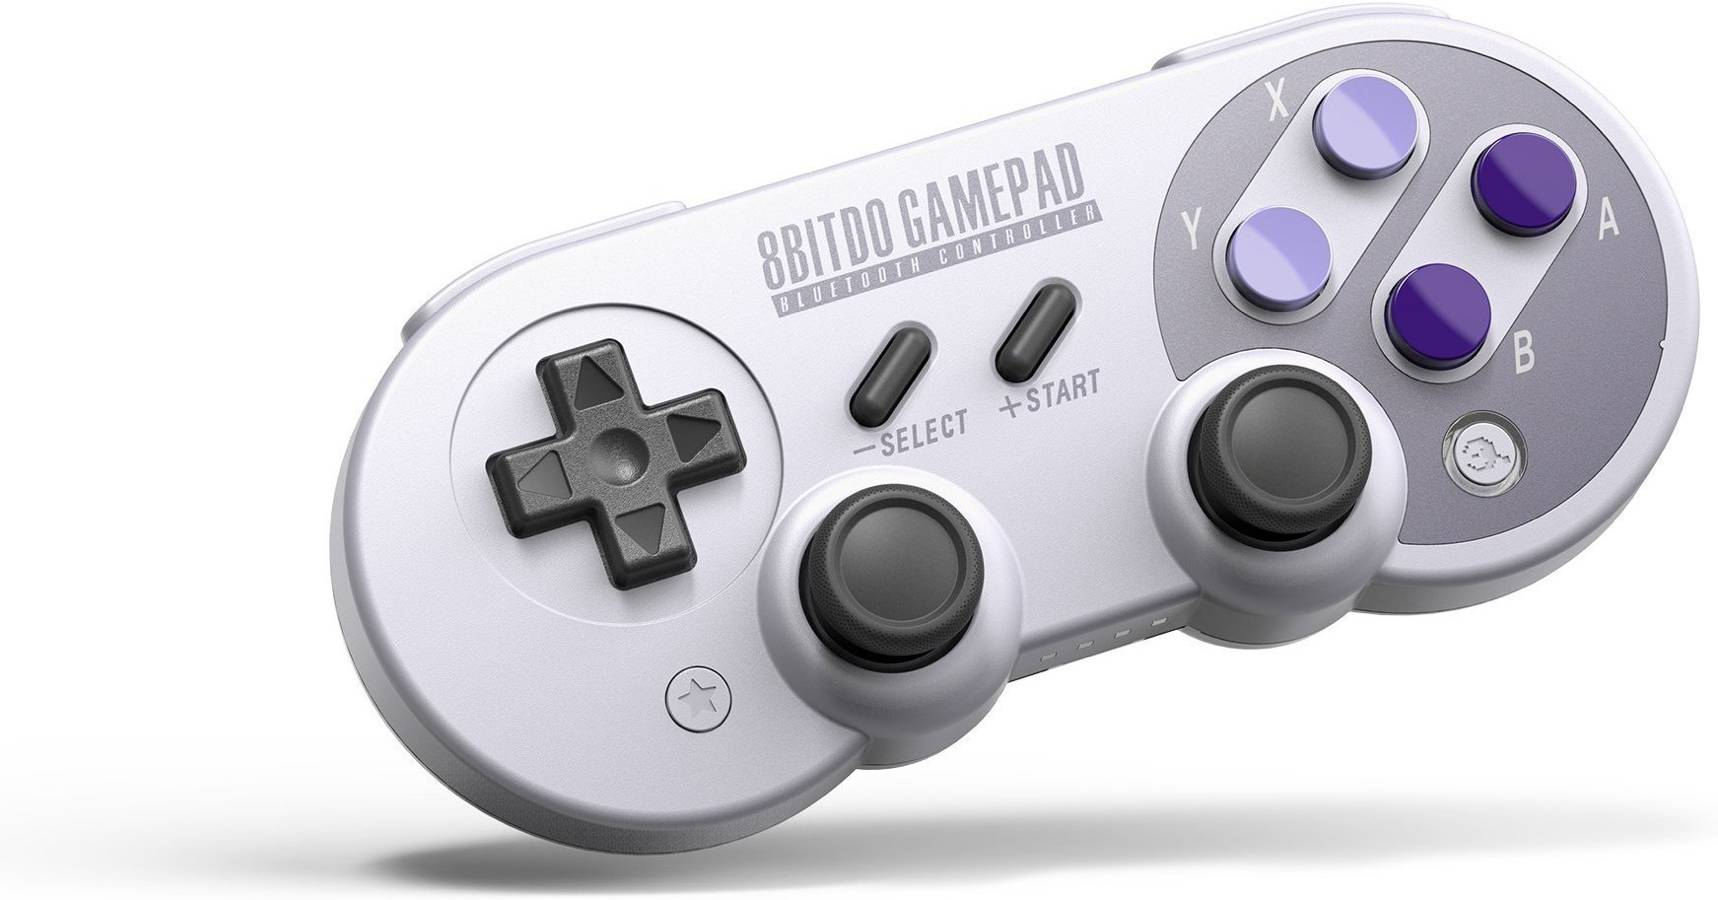 8bitdo gaming gift guide